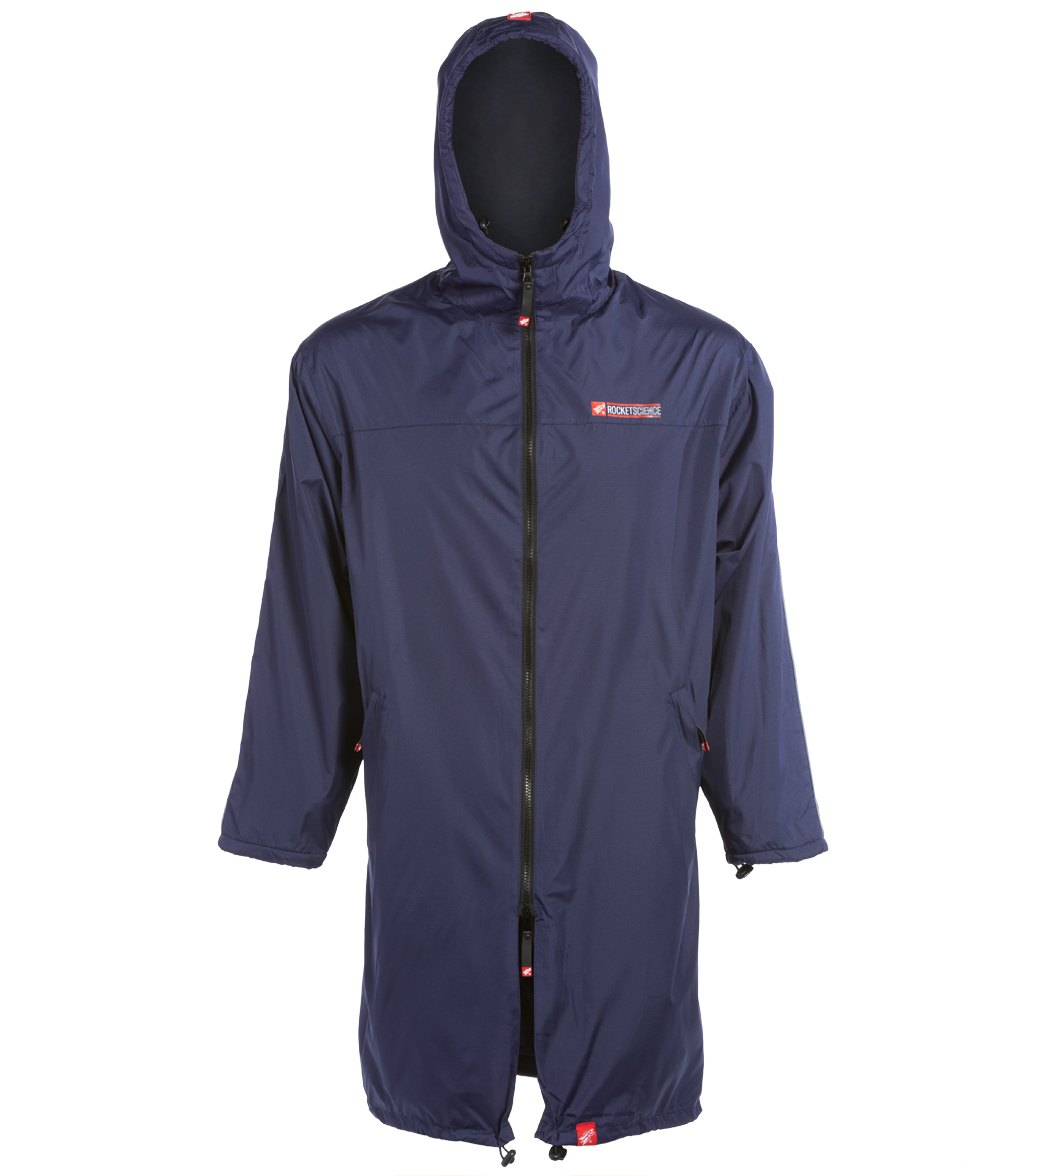 Rocket Science Sports Swim Parka at SwimOutlet.com - Free Shipping